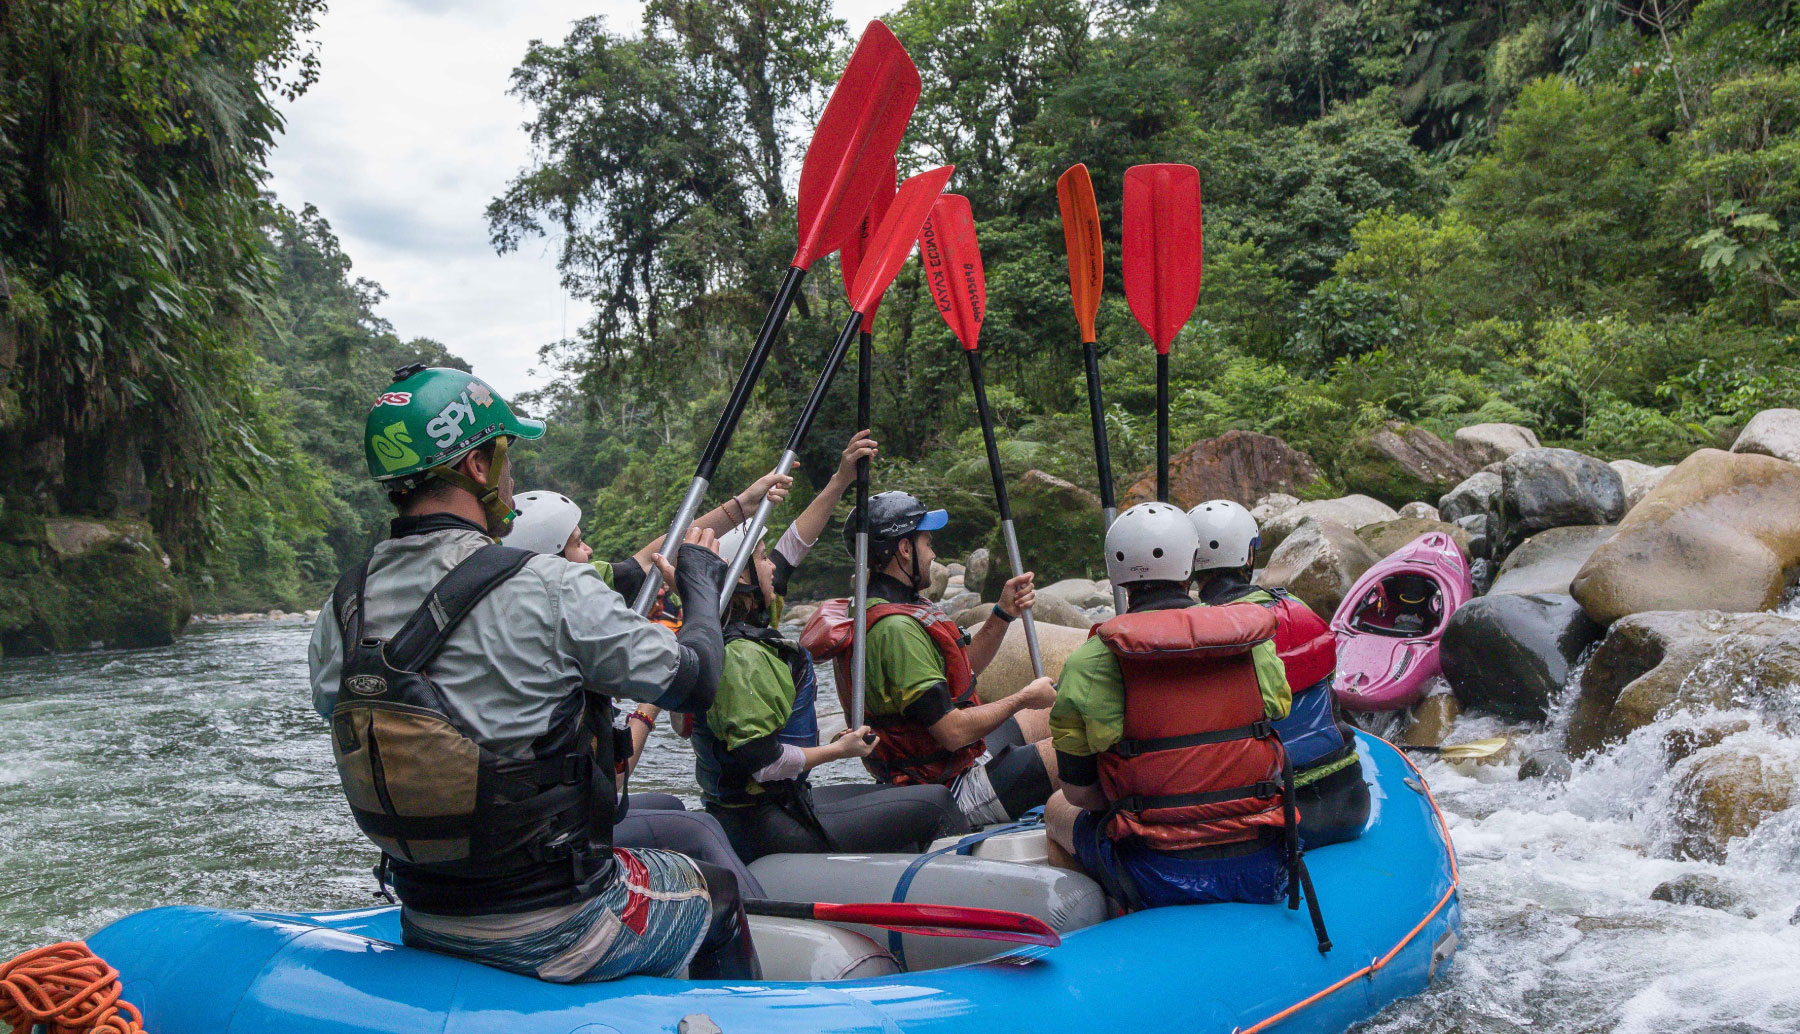 Celebration after running one of many rapids on the Jondachi river. Rafting Class IV Jondachi | Hollin rivers